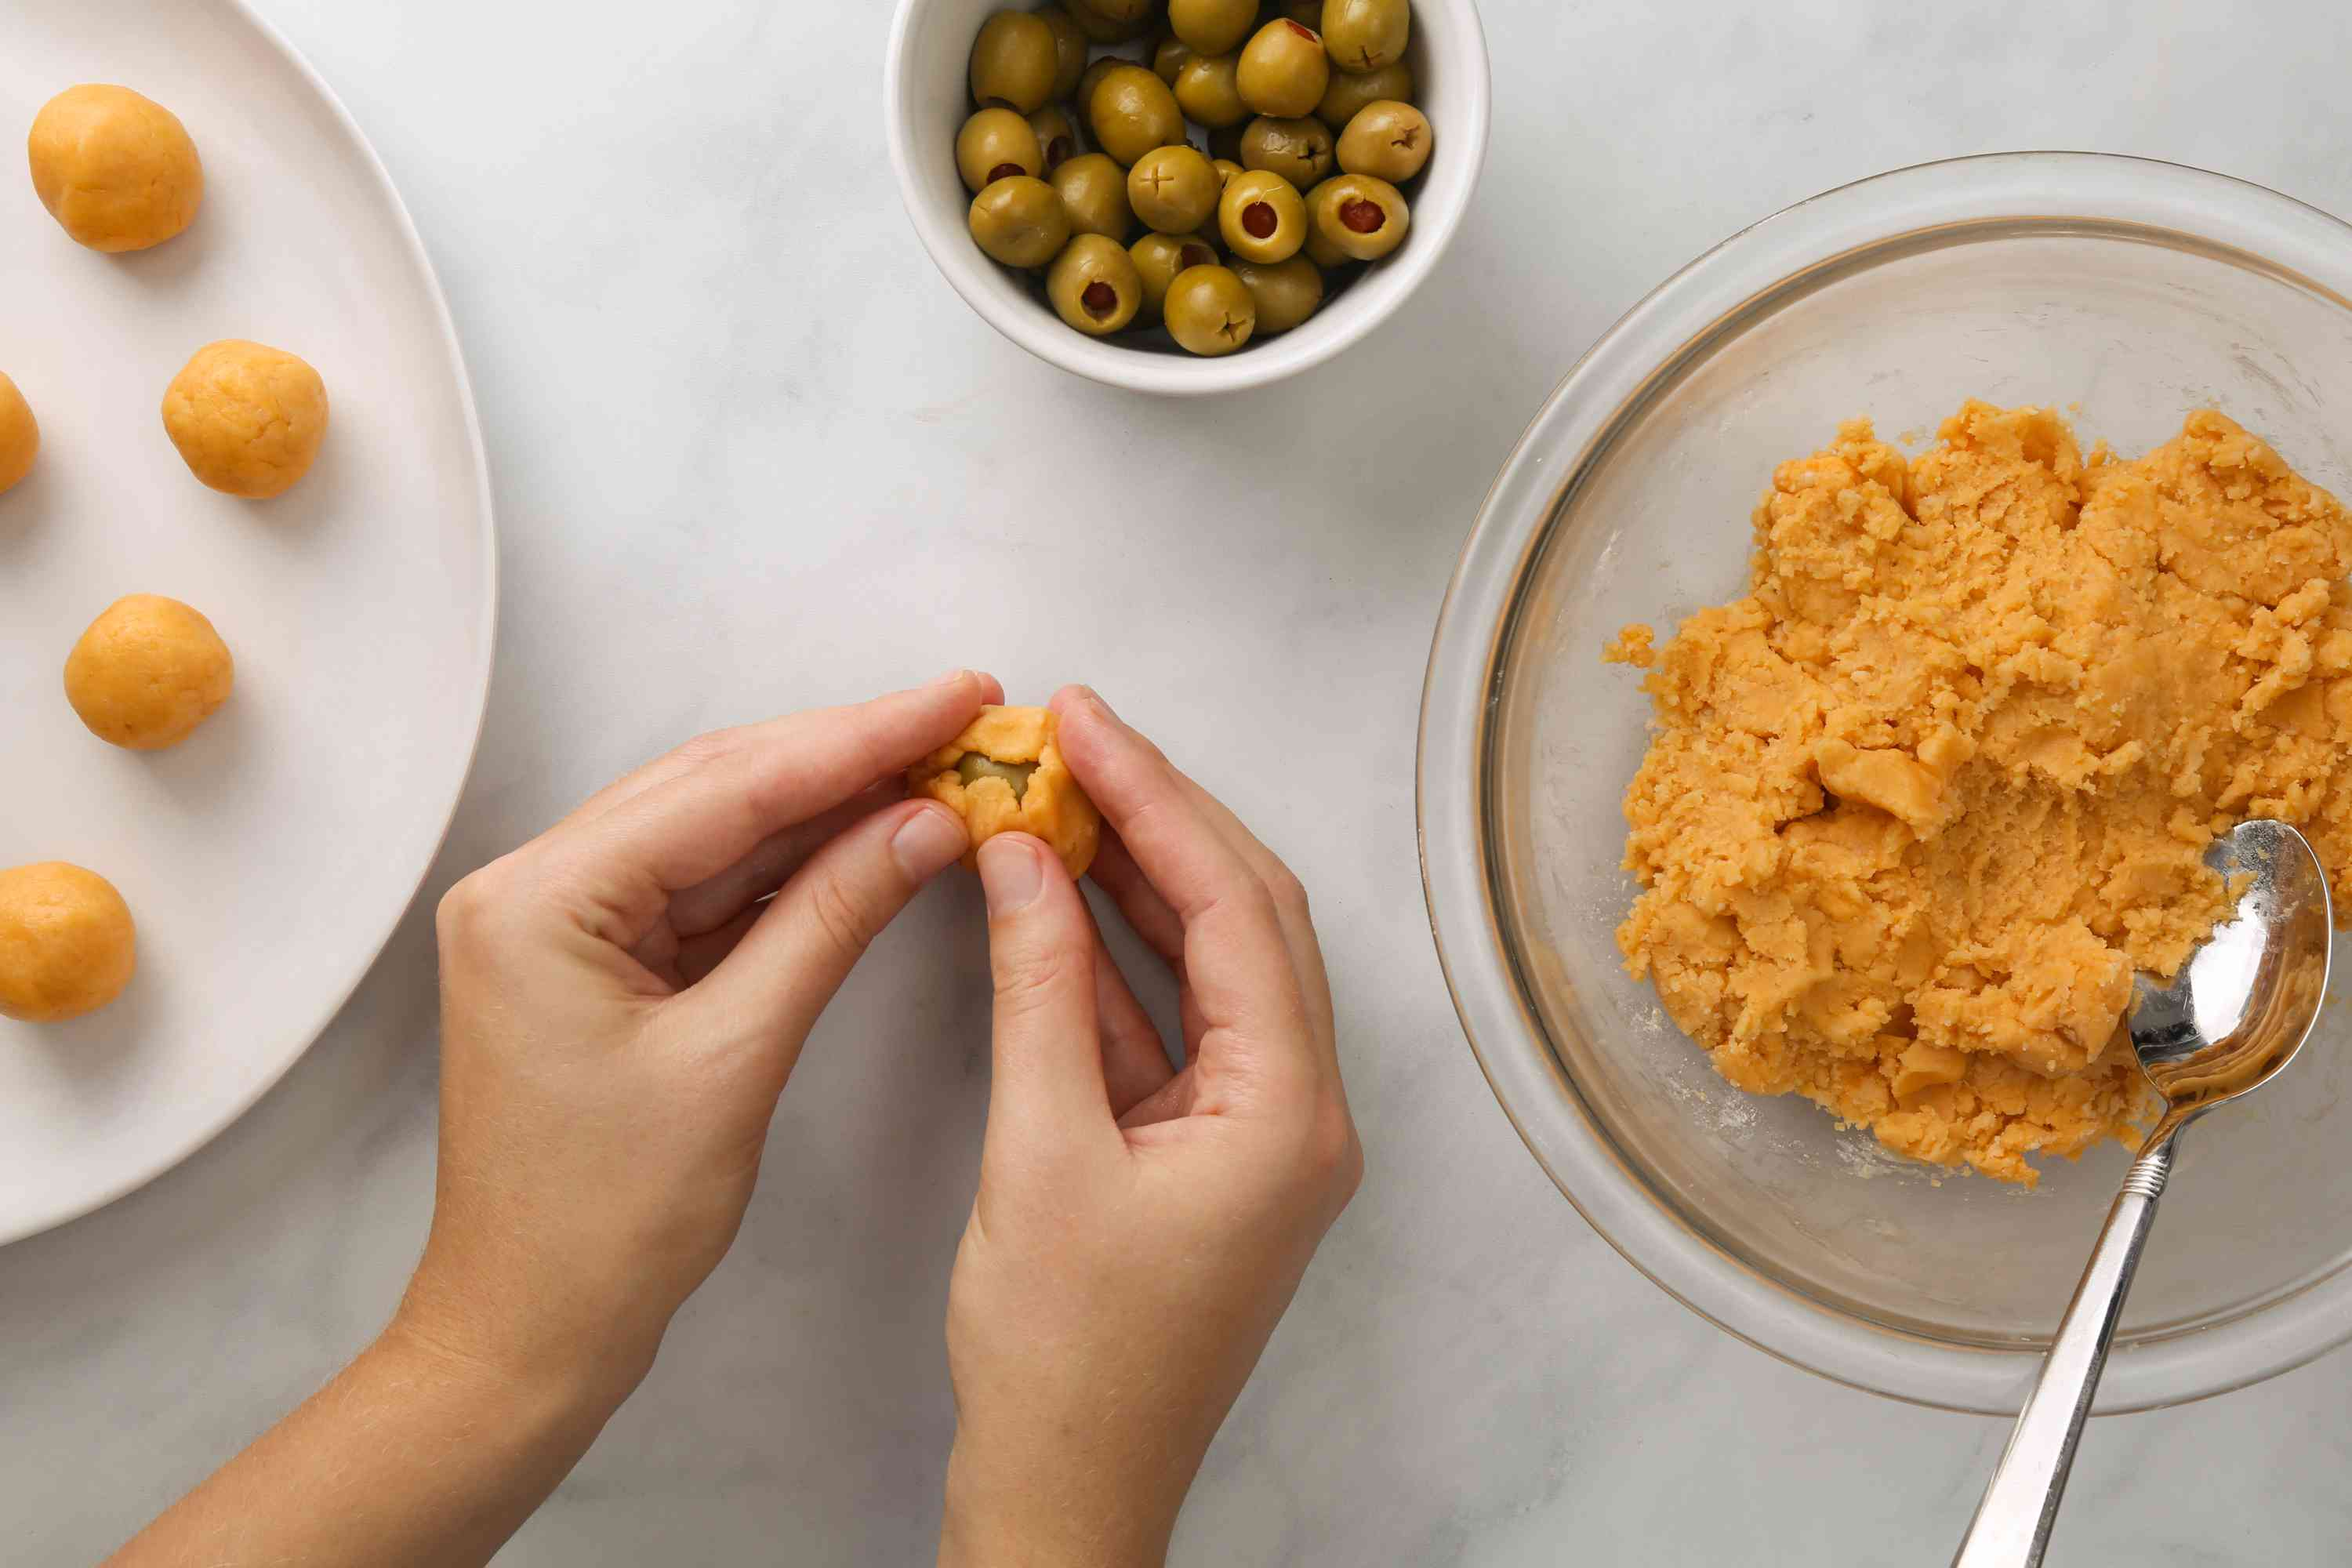 Form into small balls around olives